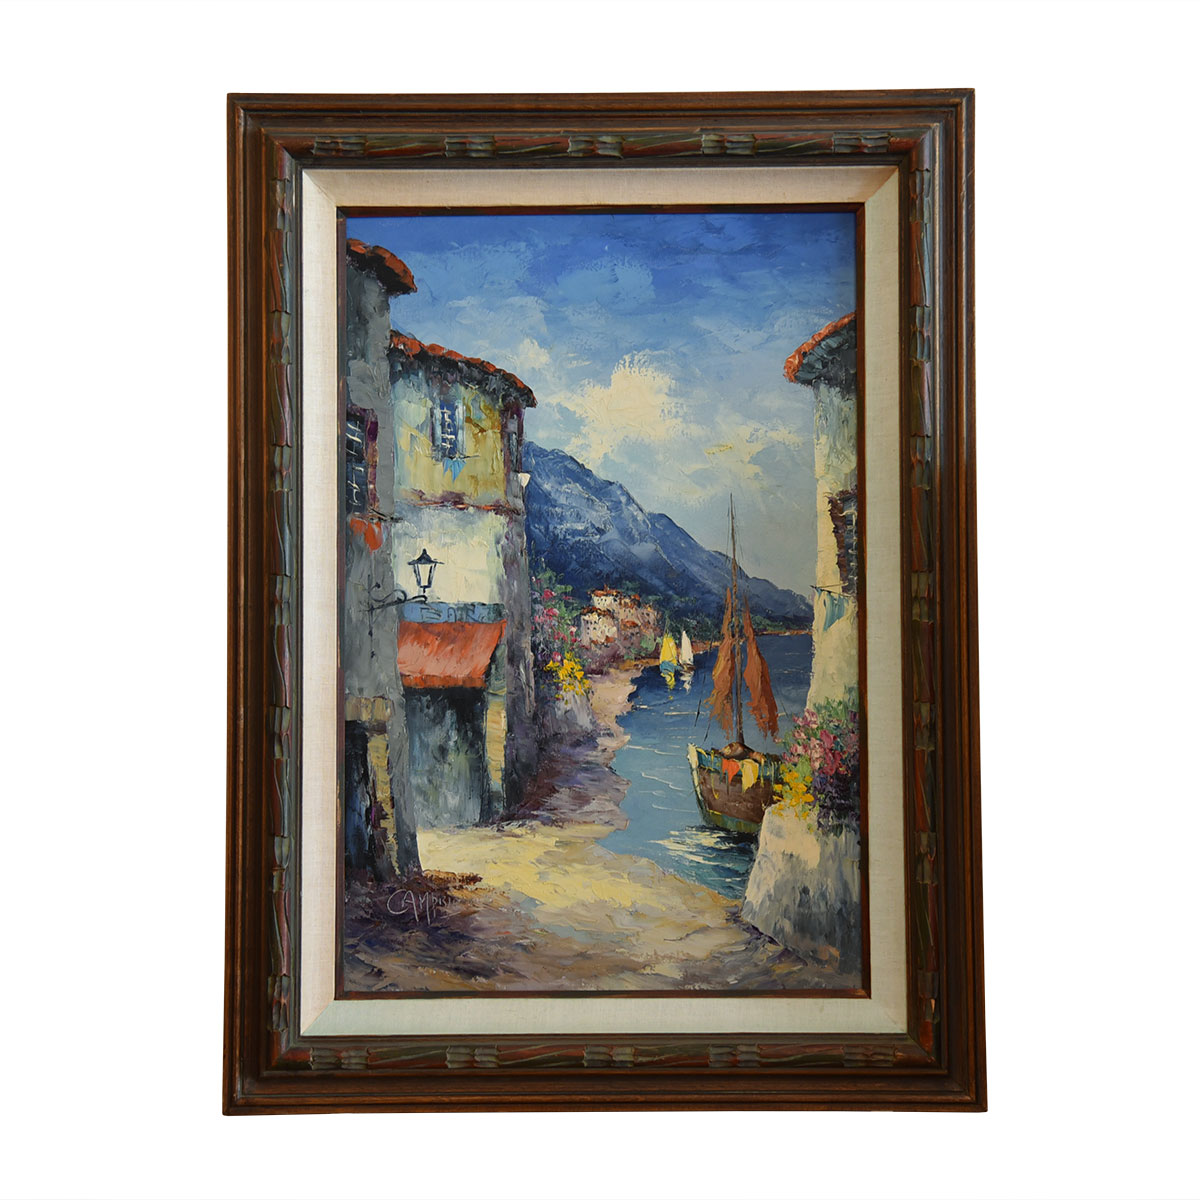 Original Signed Giovanni Camprio Mediterranean Oil and Acrylic Painting